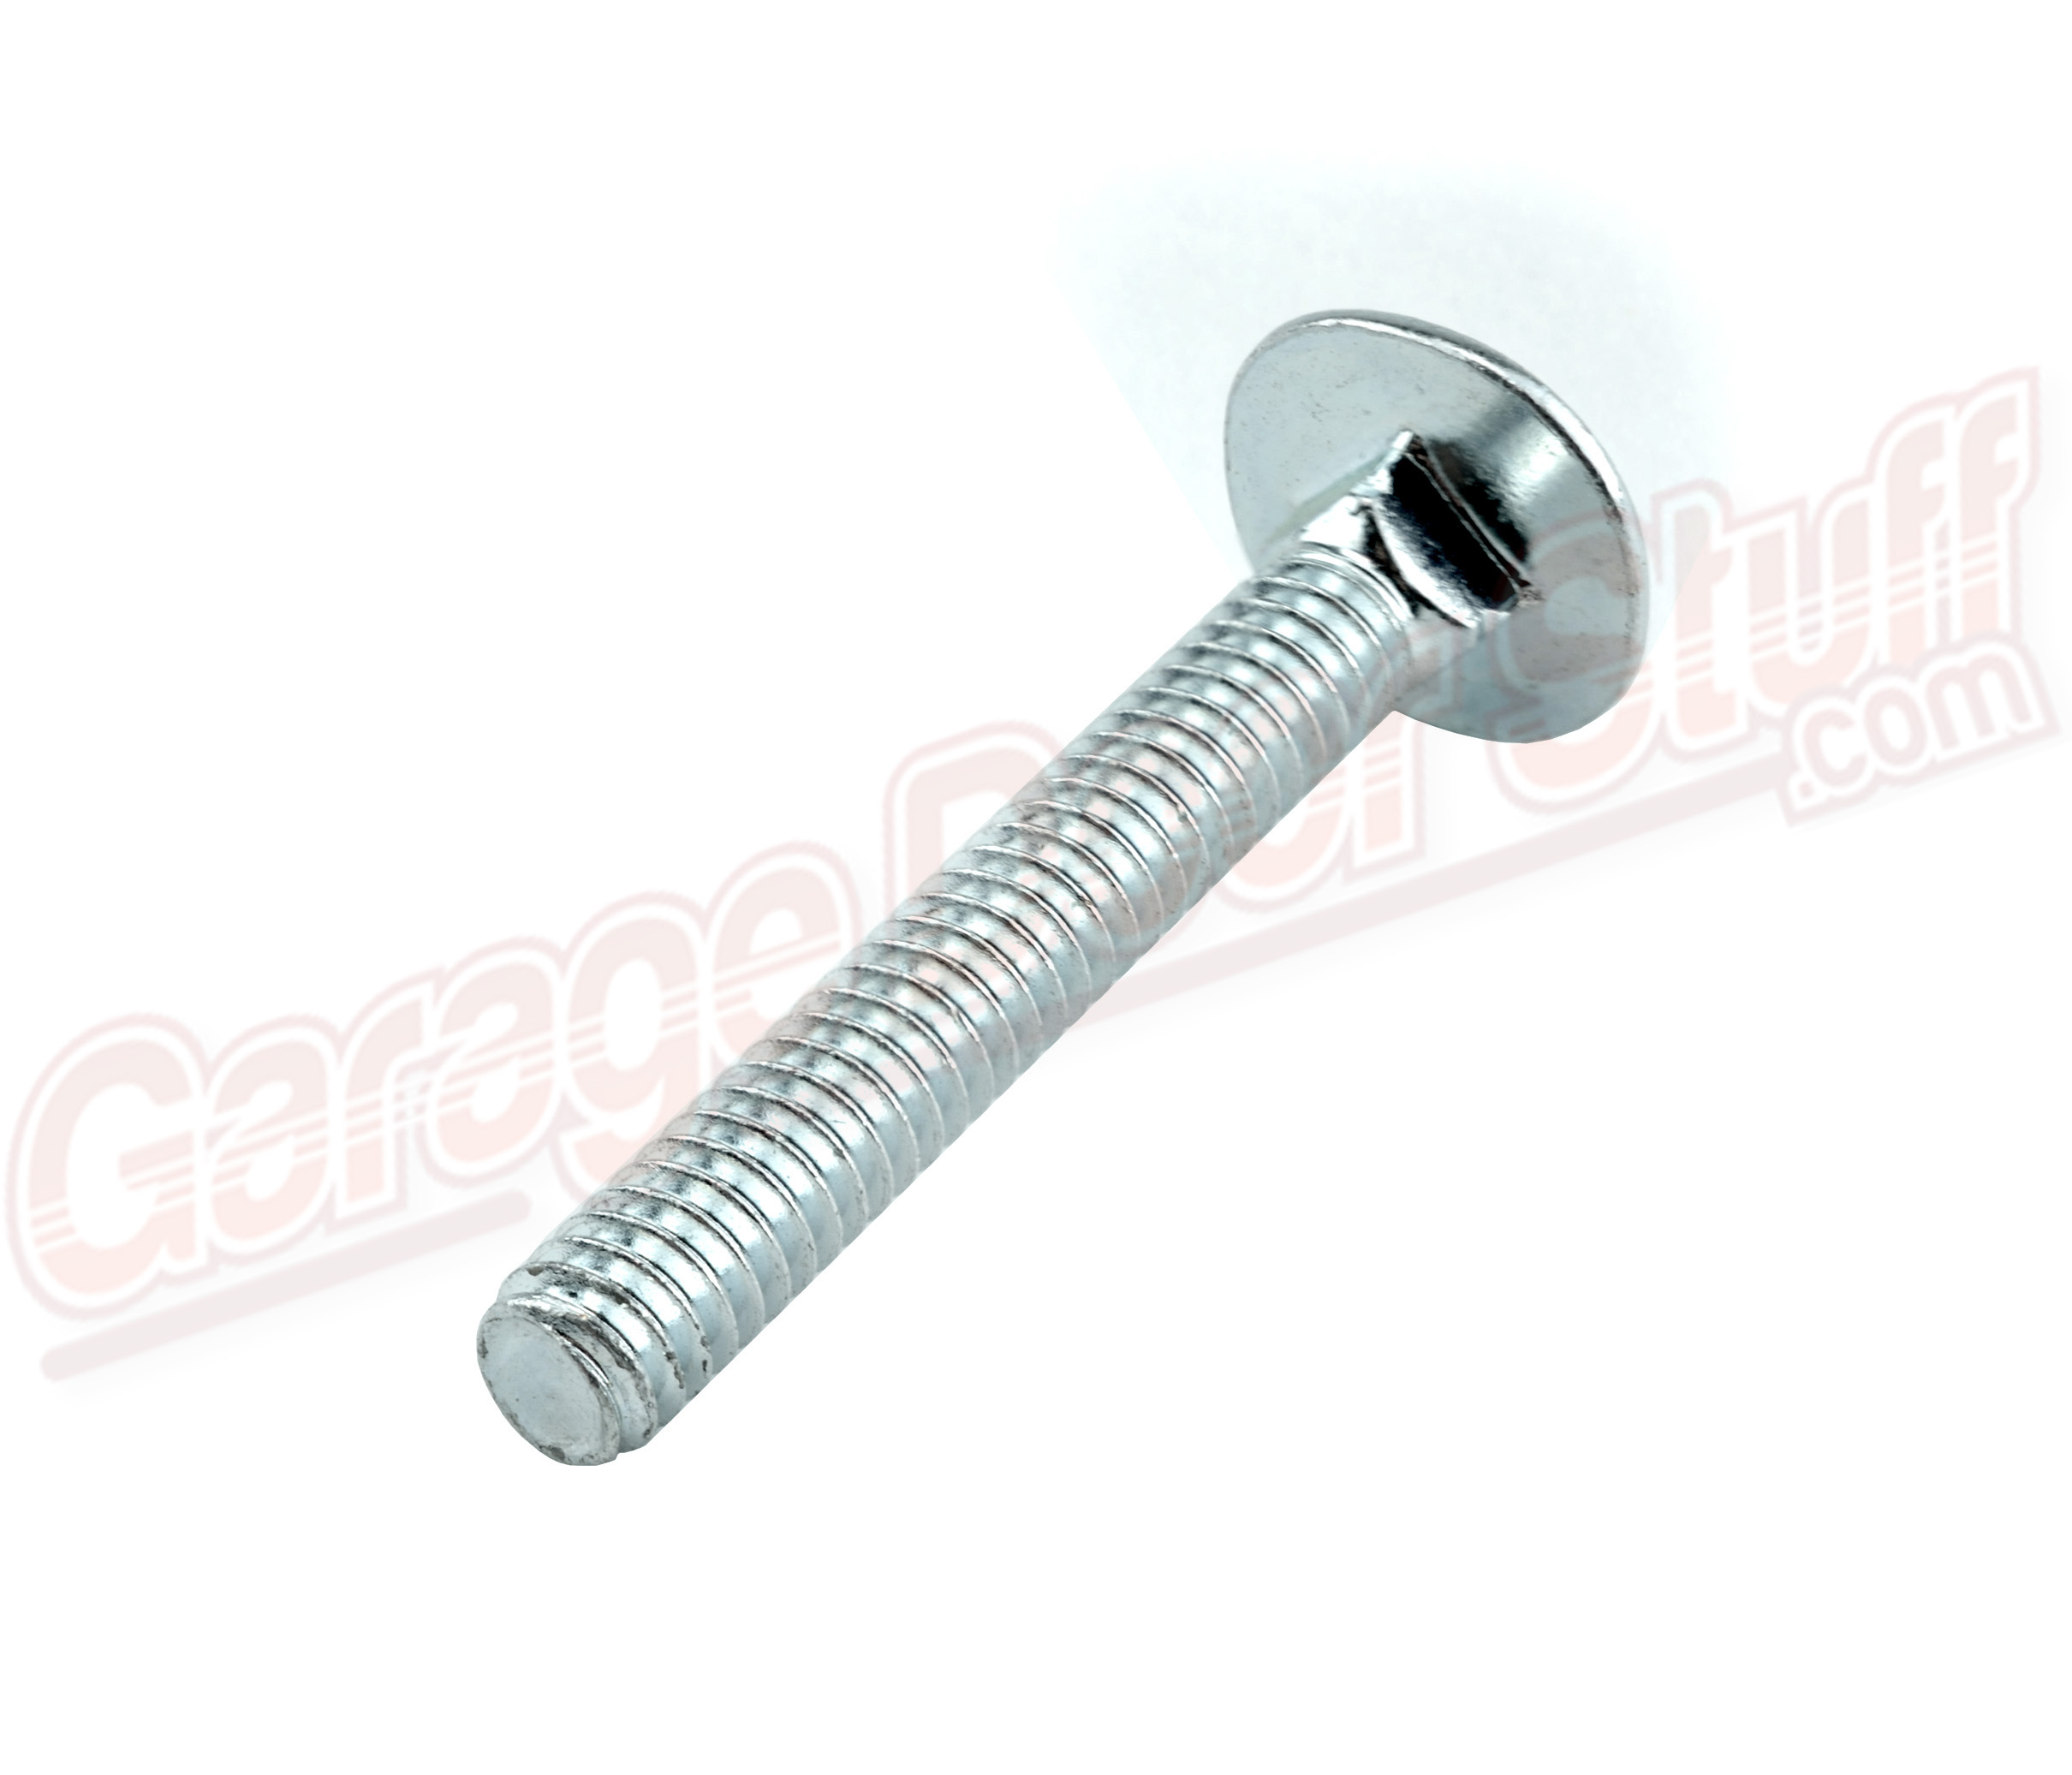 assemblies turned precision machine lg screws decorative capabilities specialty parts decor custom screw